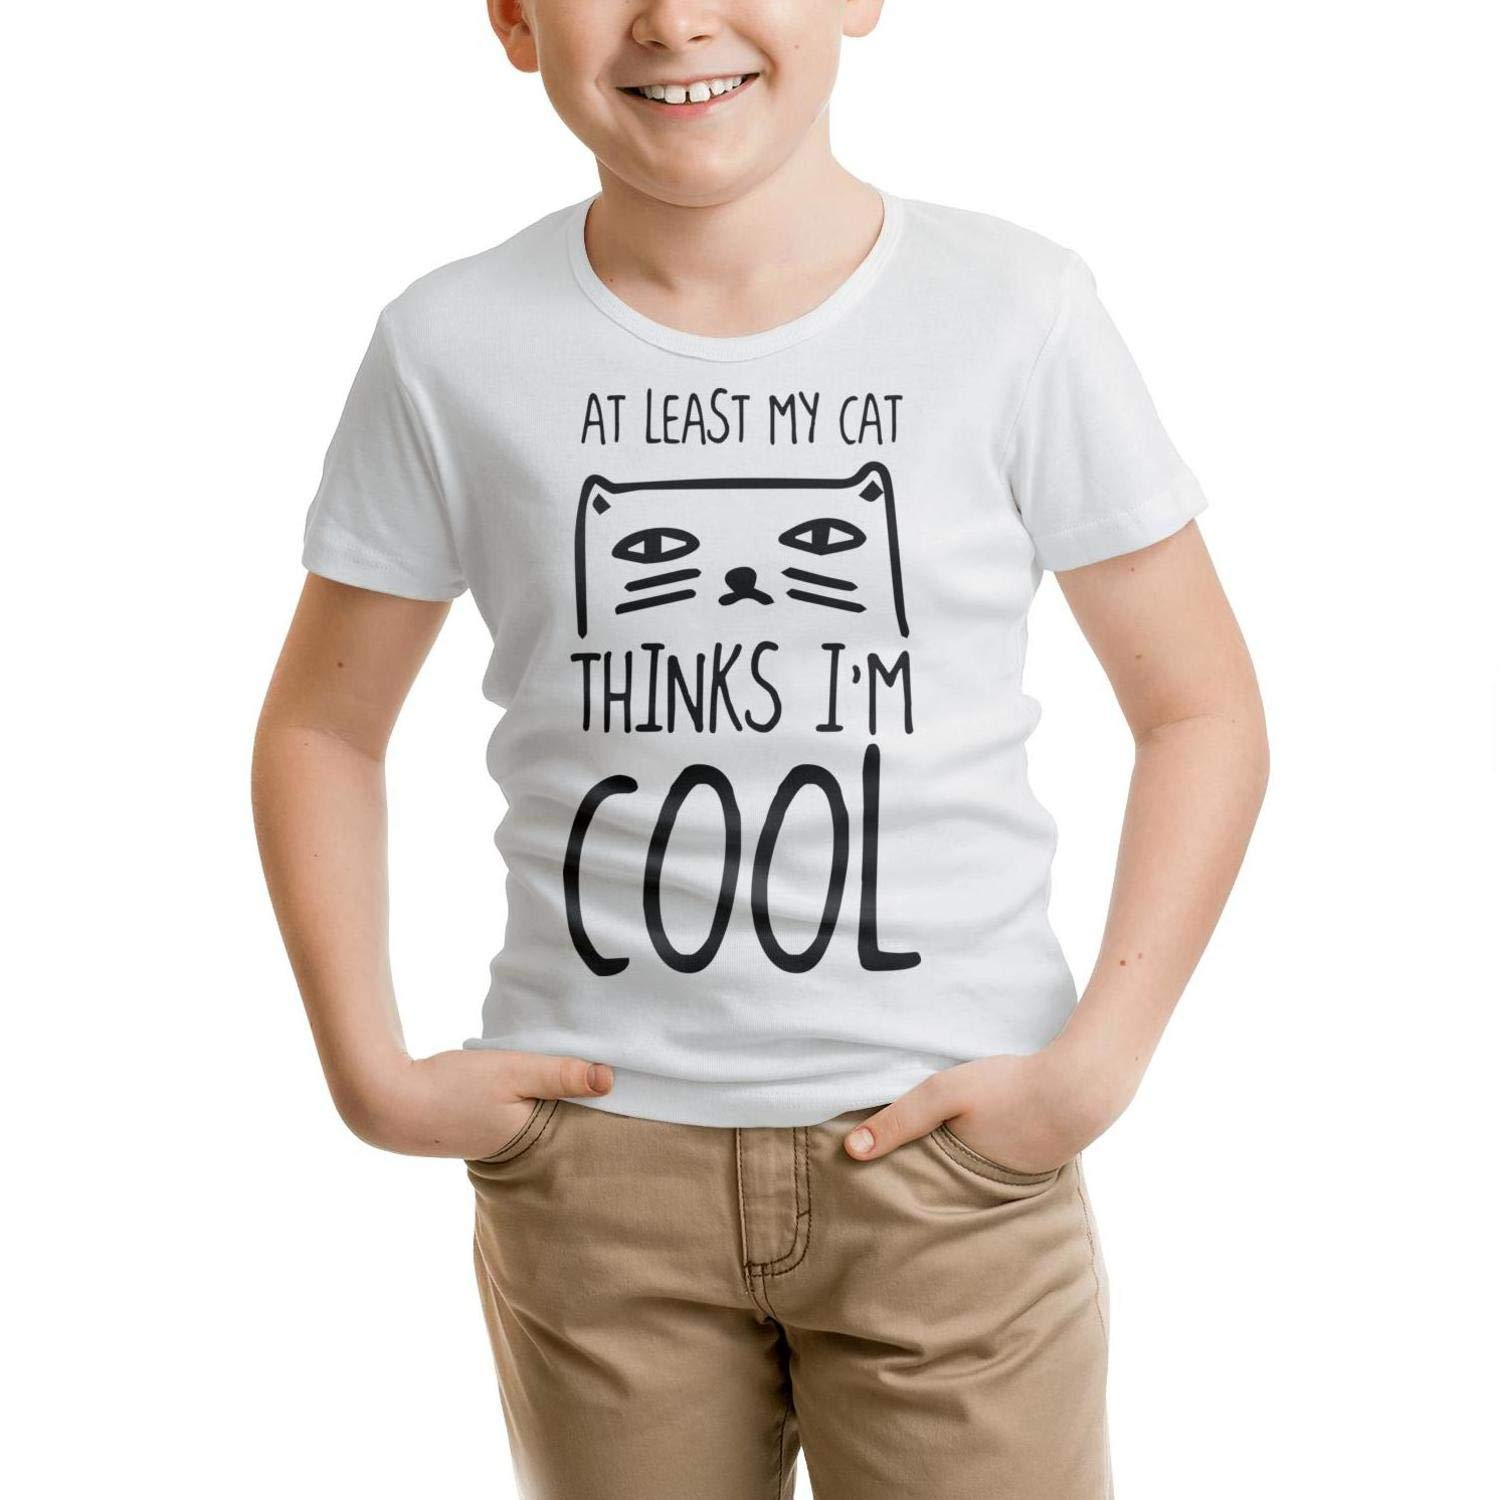 Kids T-Shirt Cute Loose at Least My Cat Loves Me t Shirt 100/% Cotton Knit Comfortable Gift for Childrens T-Shirt